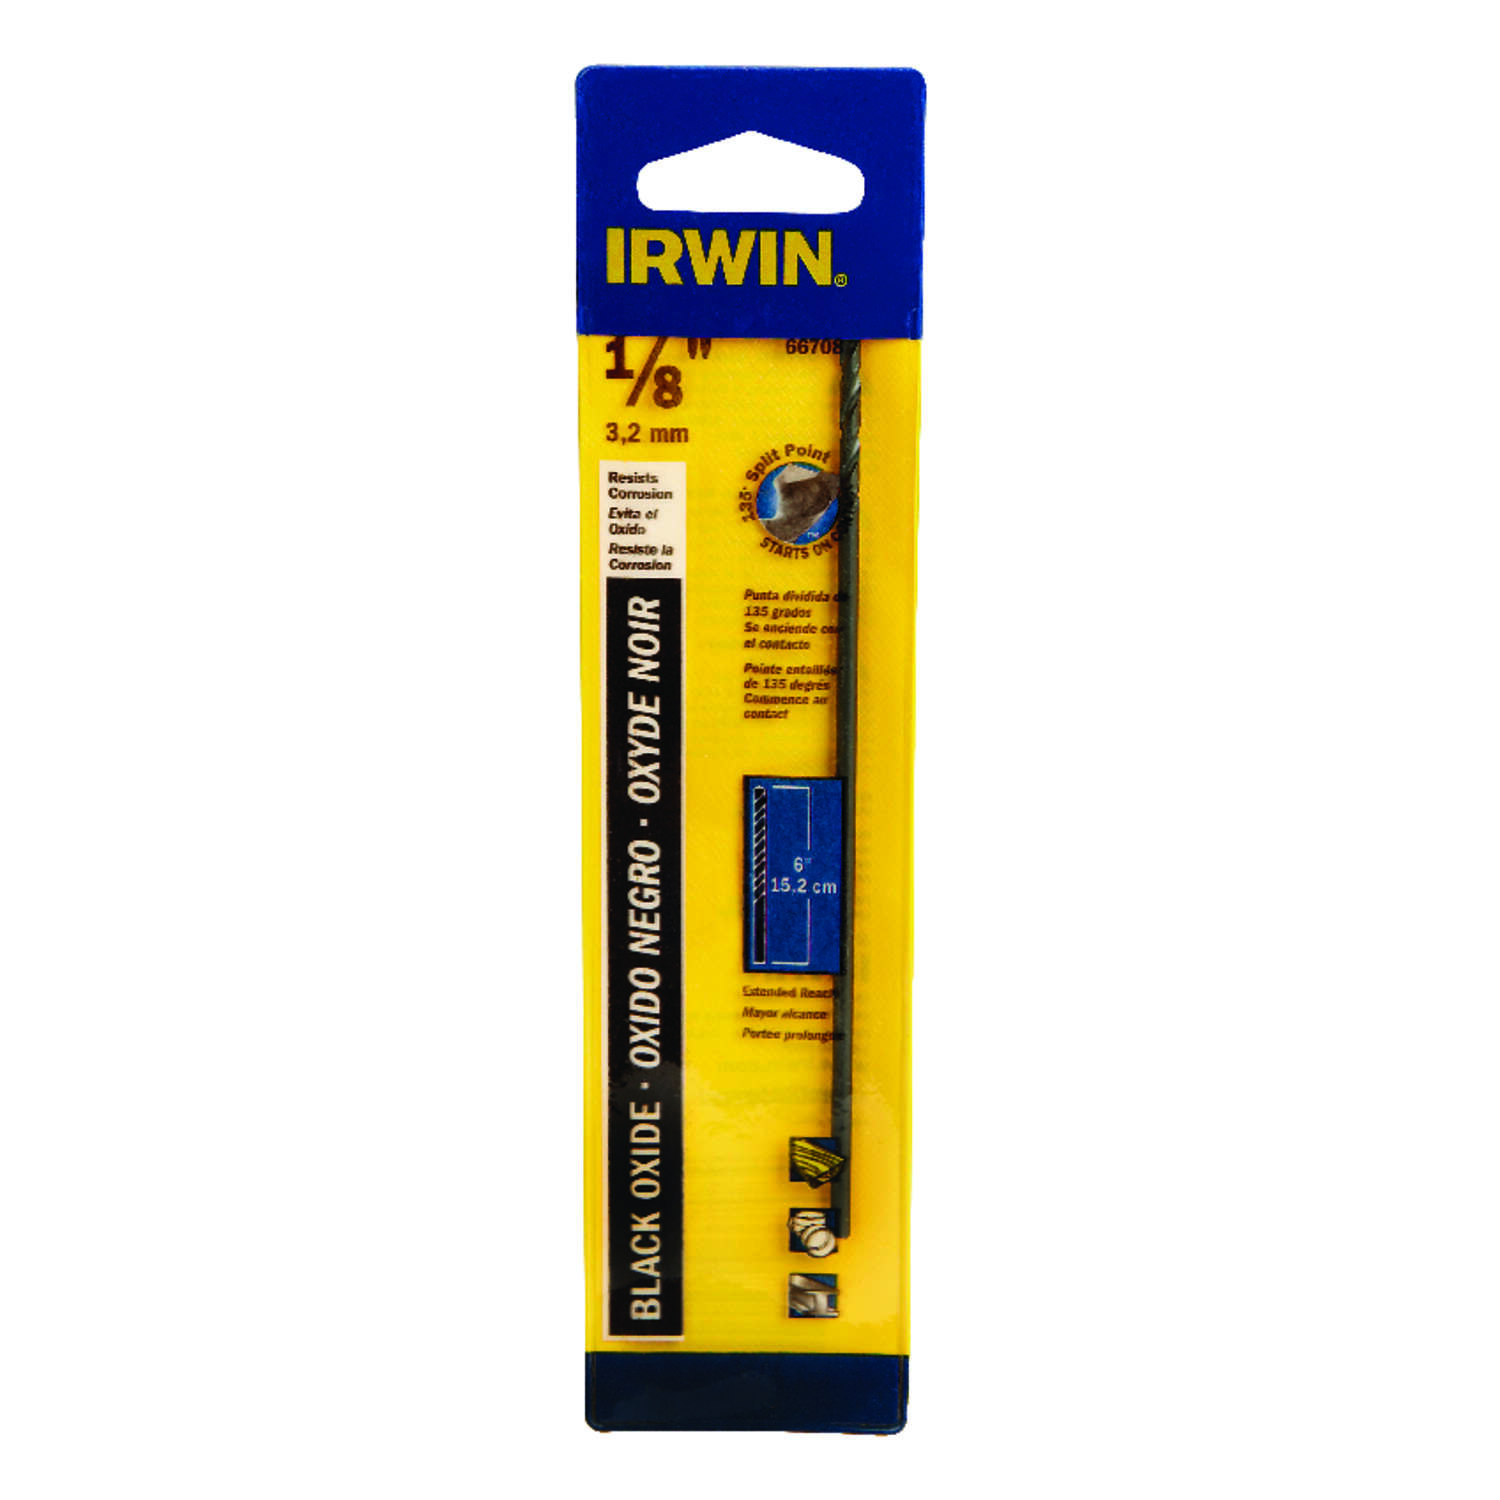 Irwin 1/8 in. x 6 in. L High Speed Steel Split Point Drill Bit 1 pc.